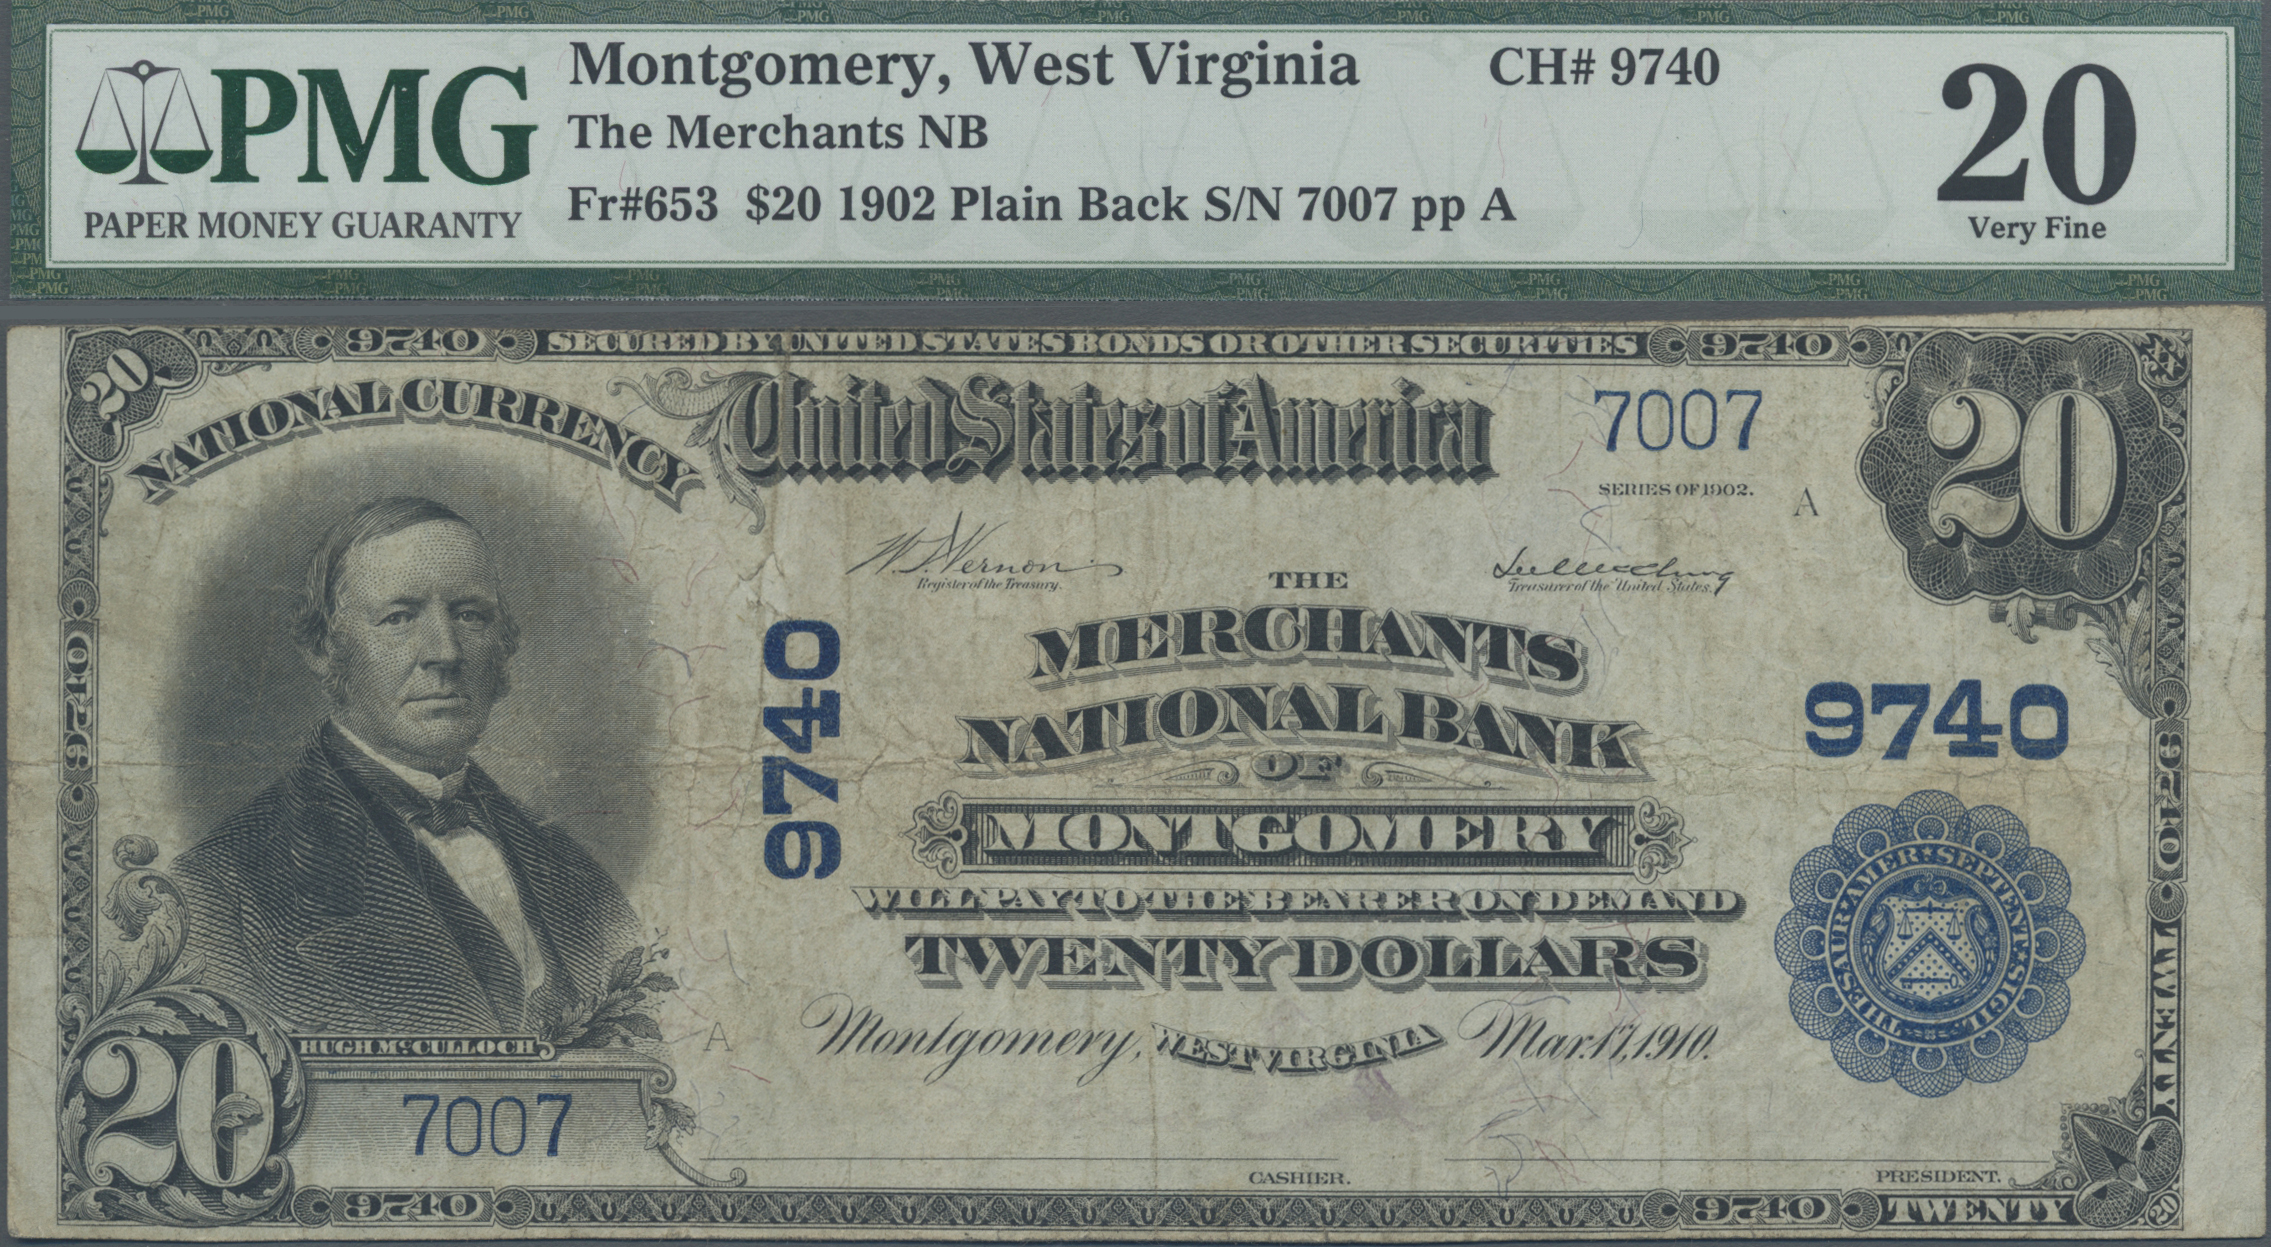 Lot 00912 - United States of America | Banknoten  -  Auktionshaus Christoph Gärtner GmbH & Co. KG Sale #48 The Banknotes